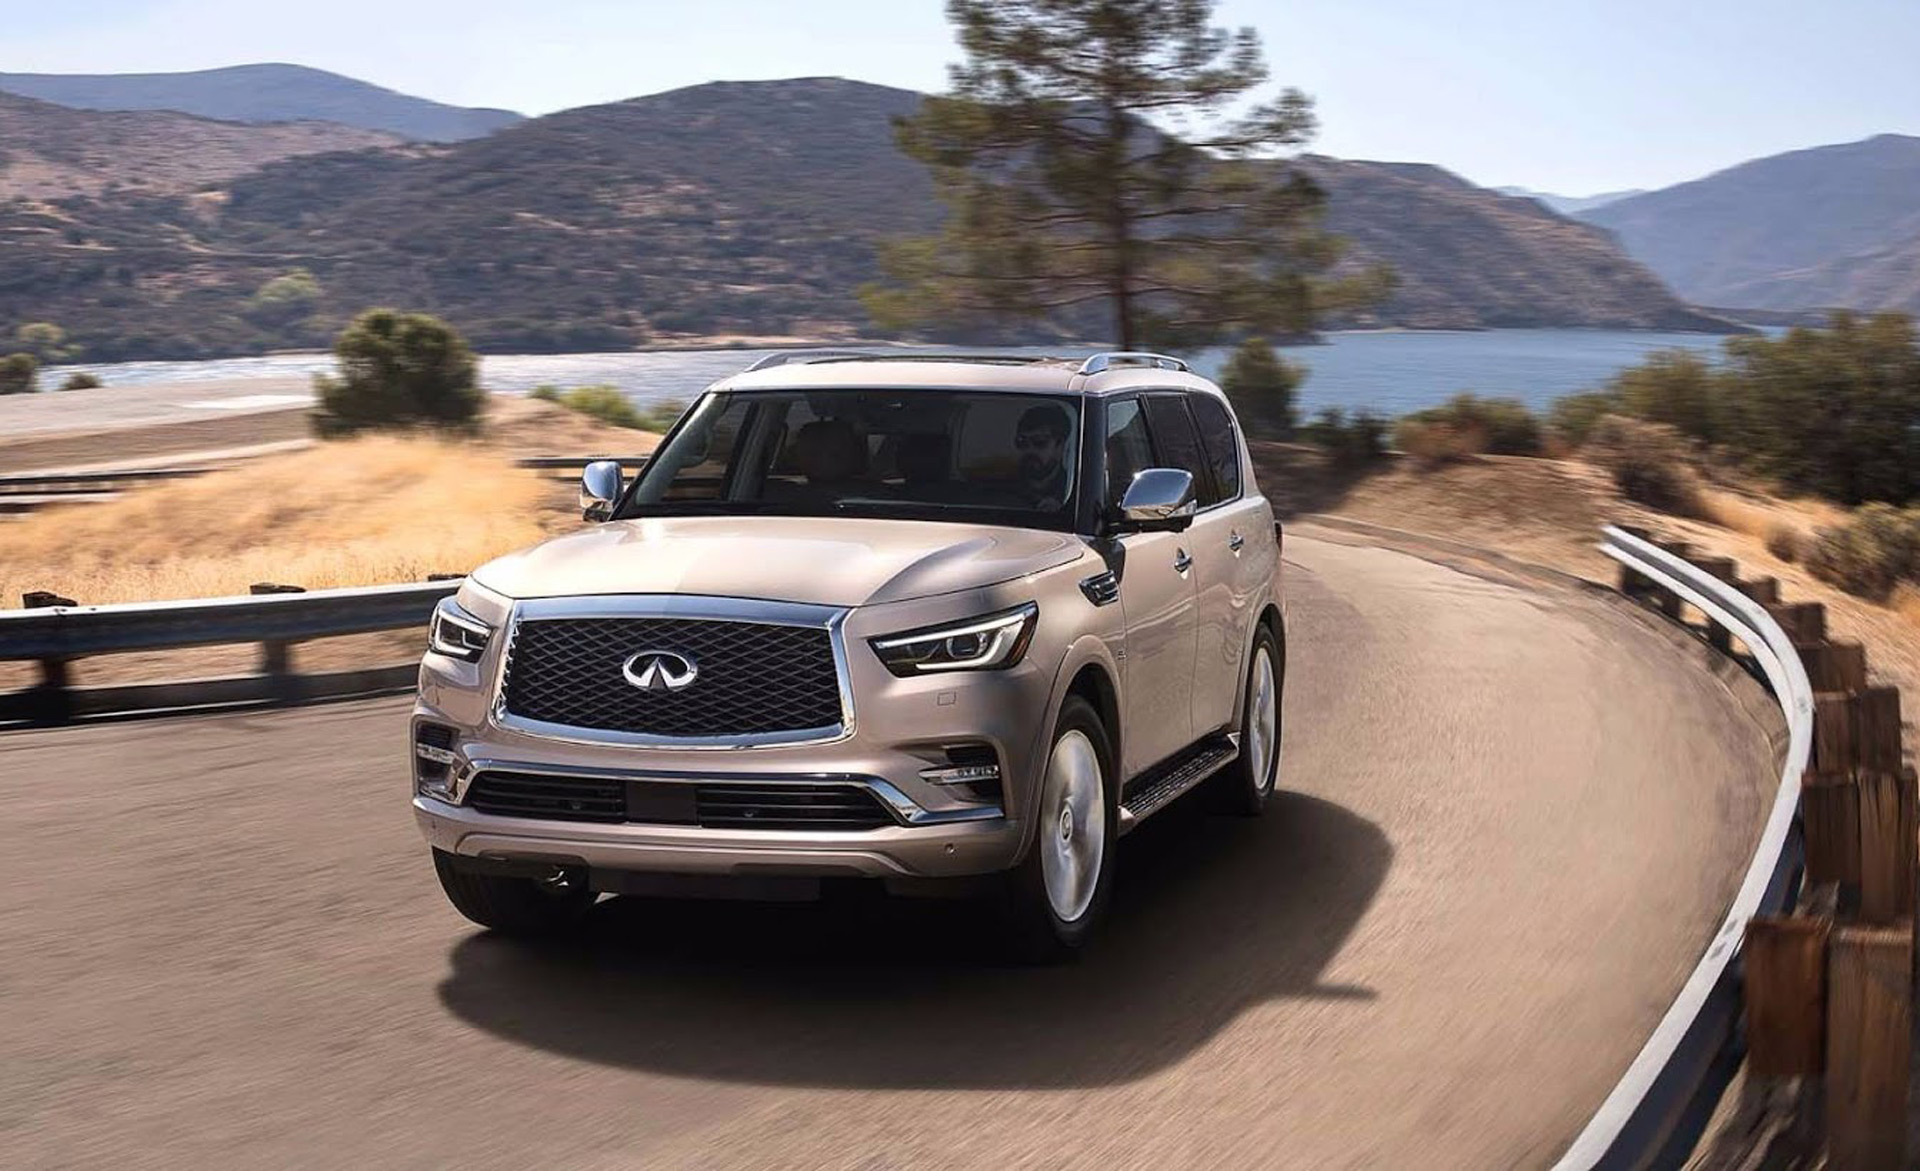 2018 infiniti qx80 preview. Black Bedroom Furniture Sets. Home Design Ideas